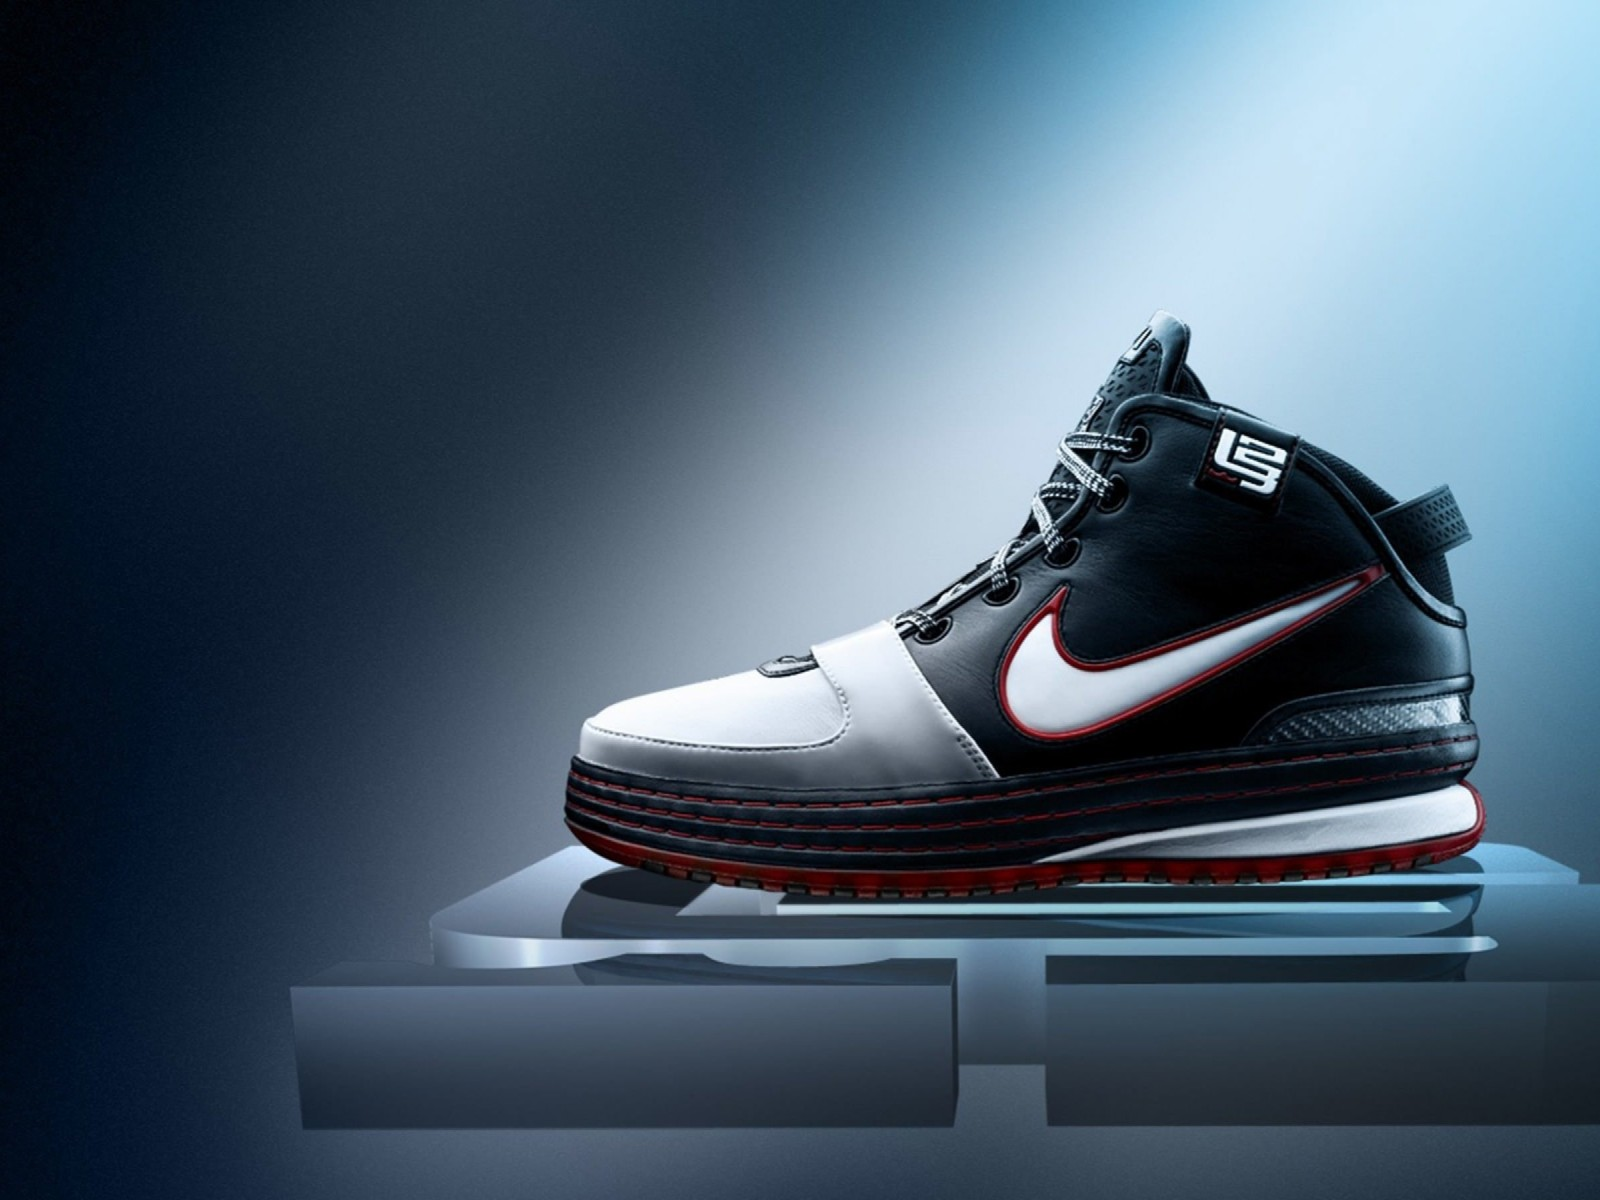 Nike Lebron James L23 Wallpaper for Desktop 1600x1200